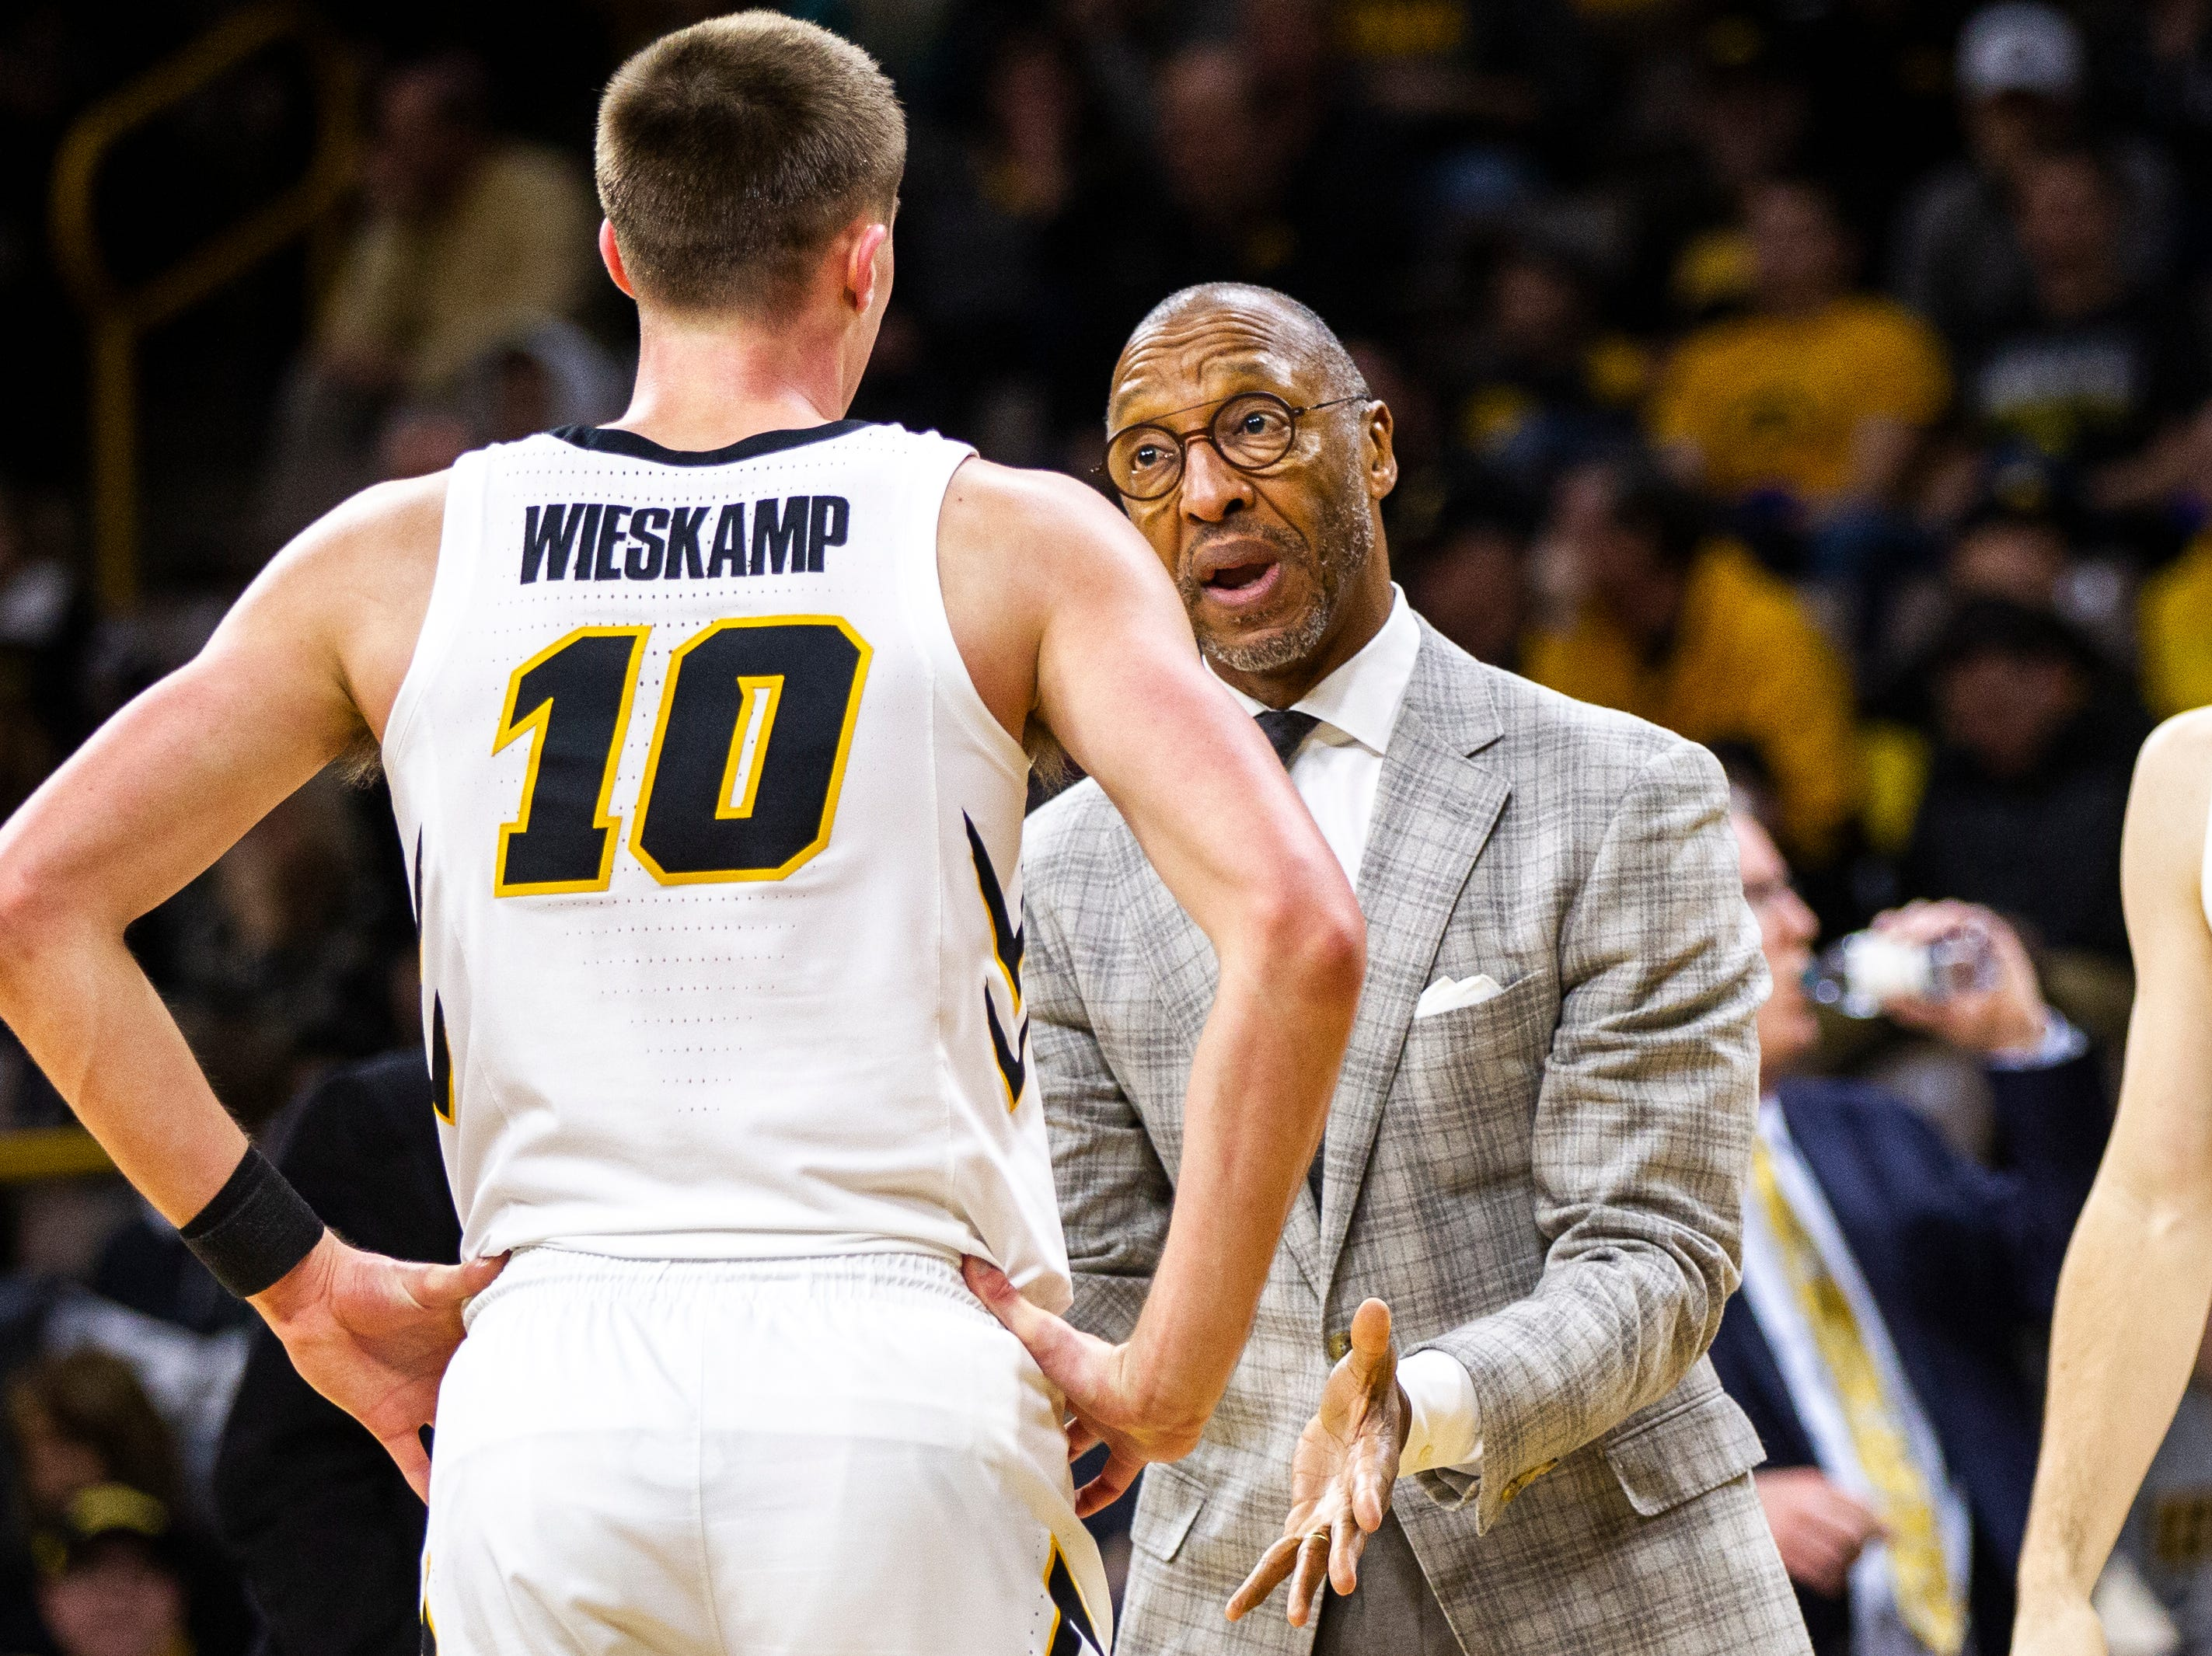 Iowa guard Joe Wieskamp (10) talks with Iowa assistant Sherman Dillard during a NCAA men's basketball game on Saturday, Dec. 29, 2018, at Carver-Hawkeye Arena in Iowa City.